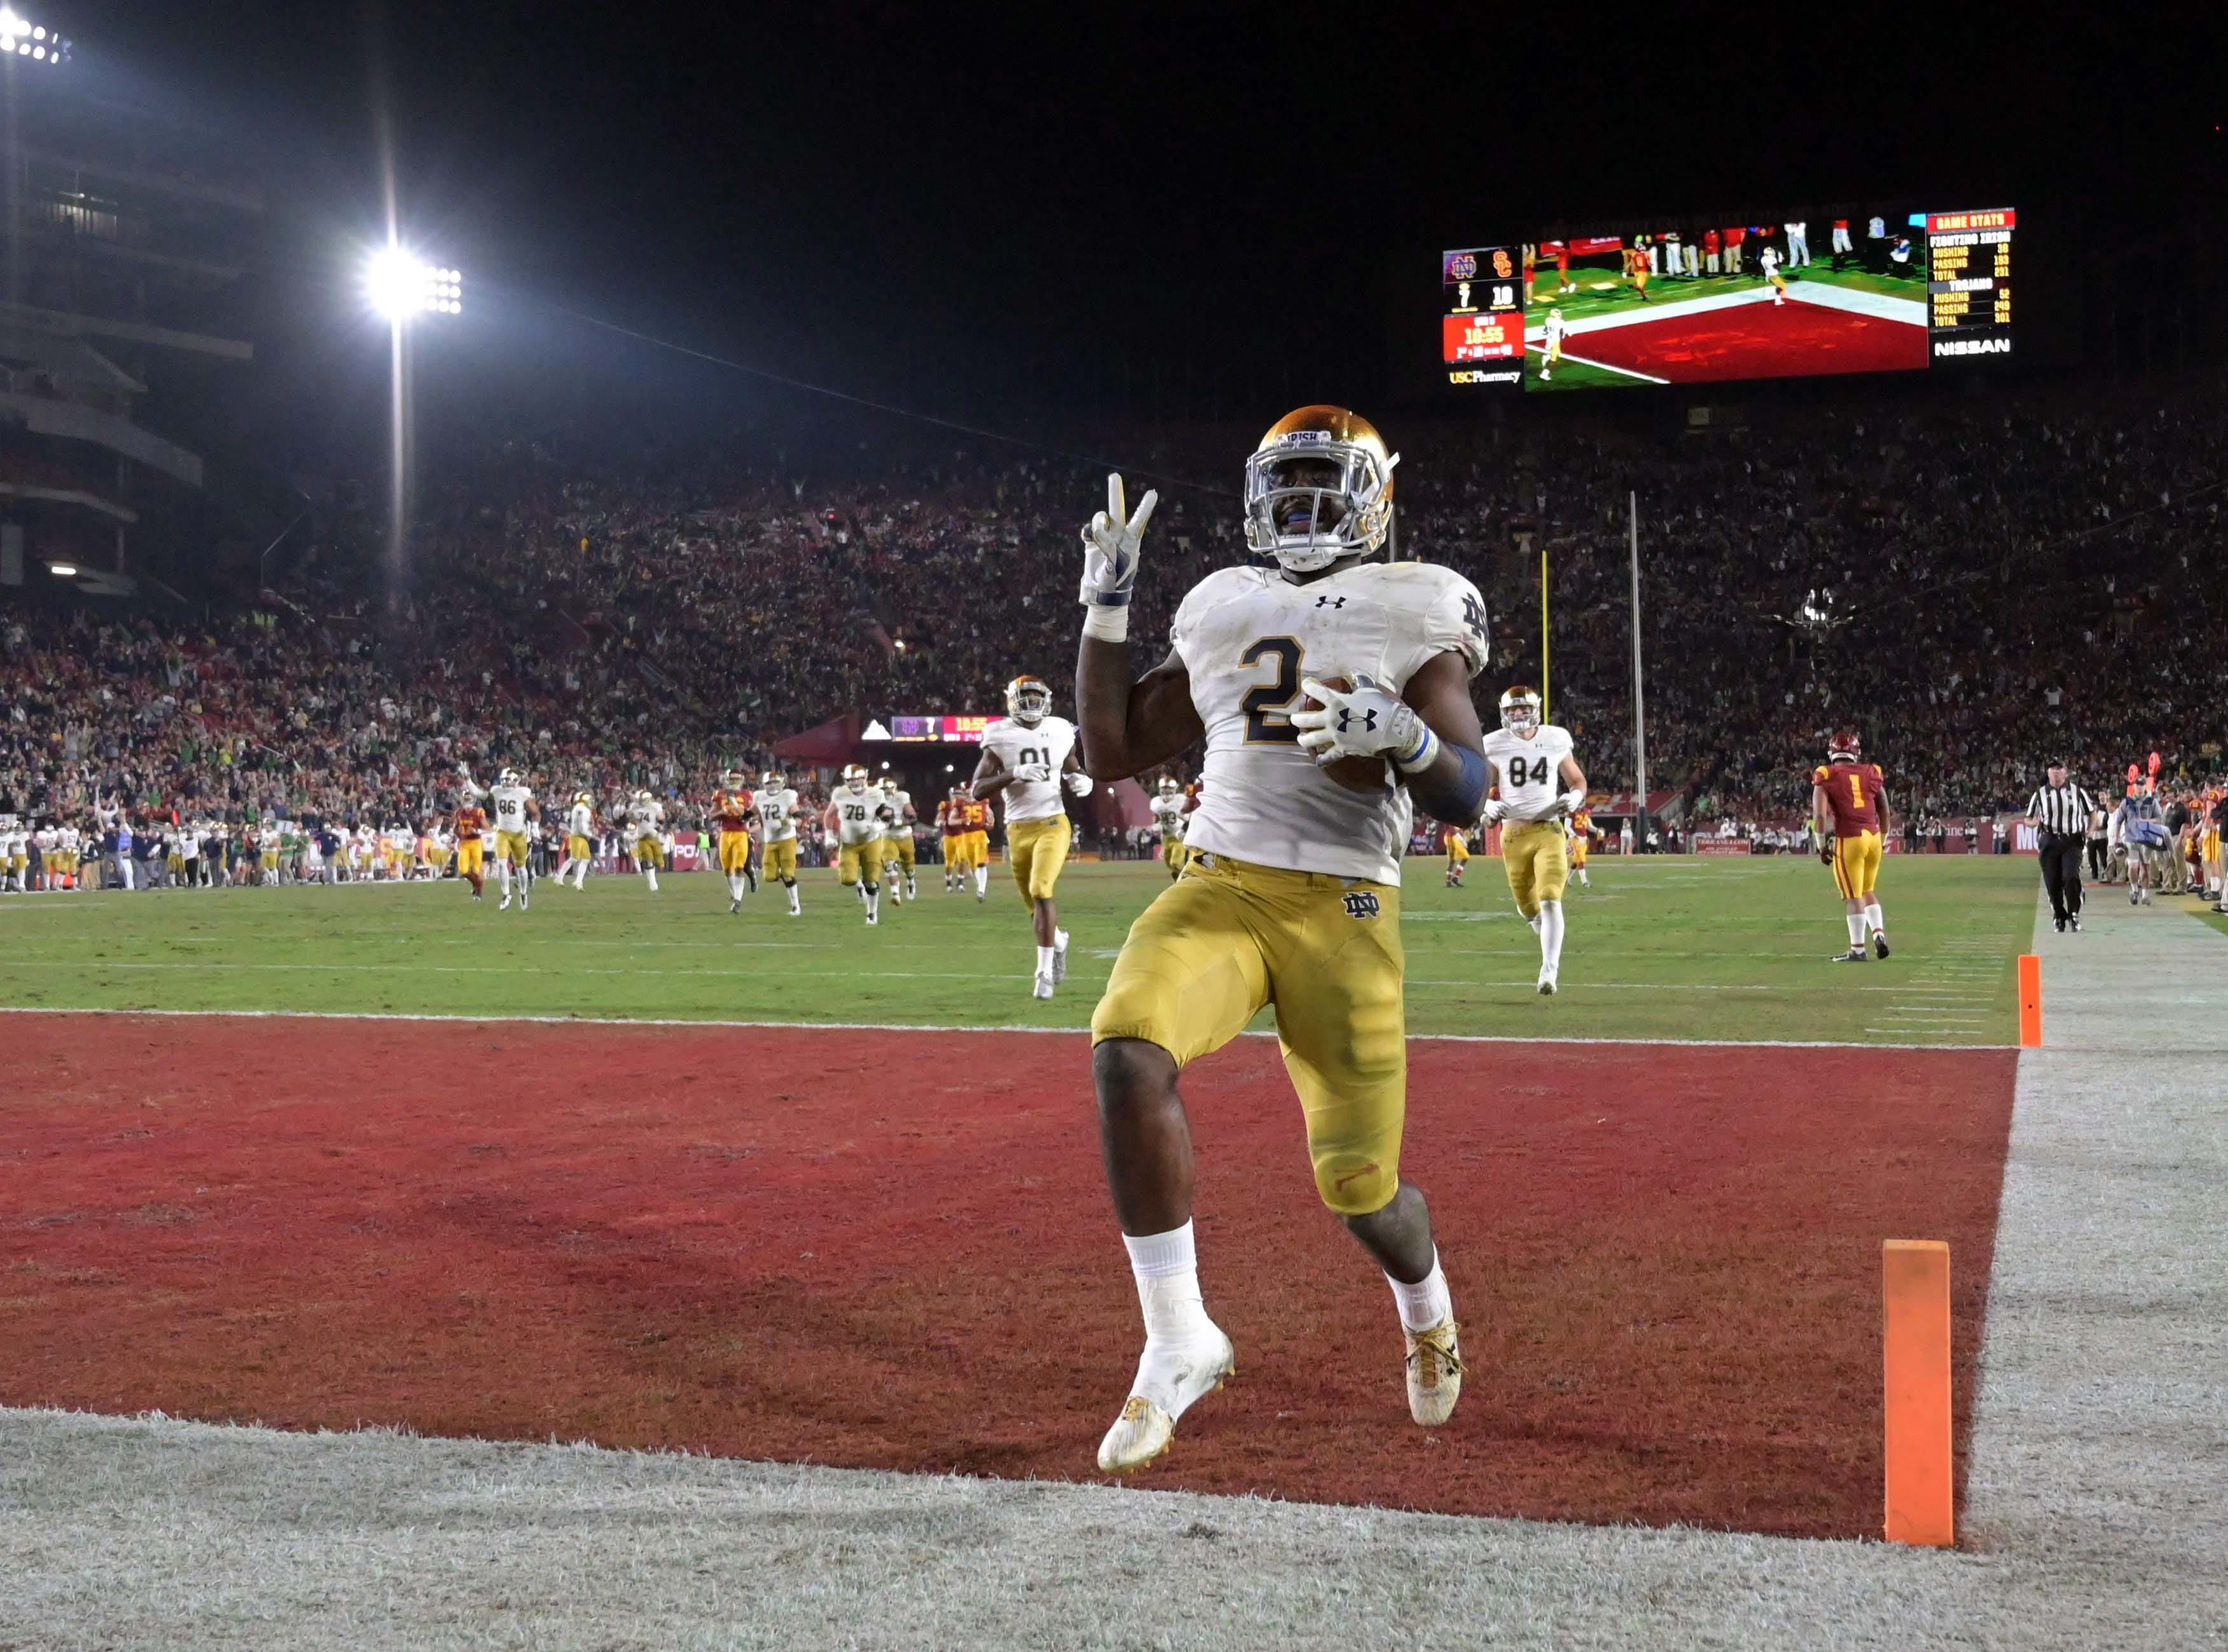 Nov. 24: Notre Dame Fighting Irish running back Dexter Williams celebrates after scoring on a 52-yard touchdown run in the third quarter against the Southern California Trojans at the Los Angeles Memorial Coliseum.